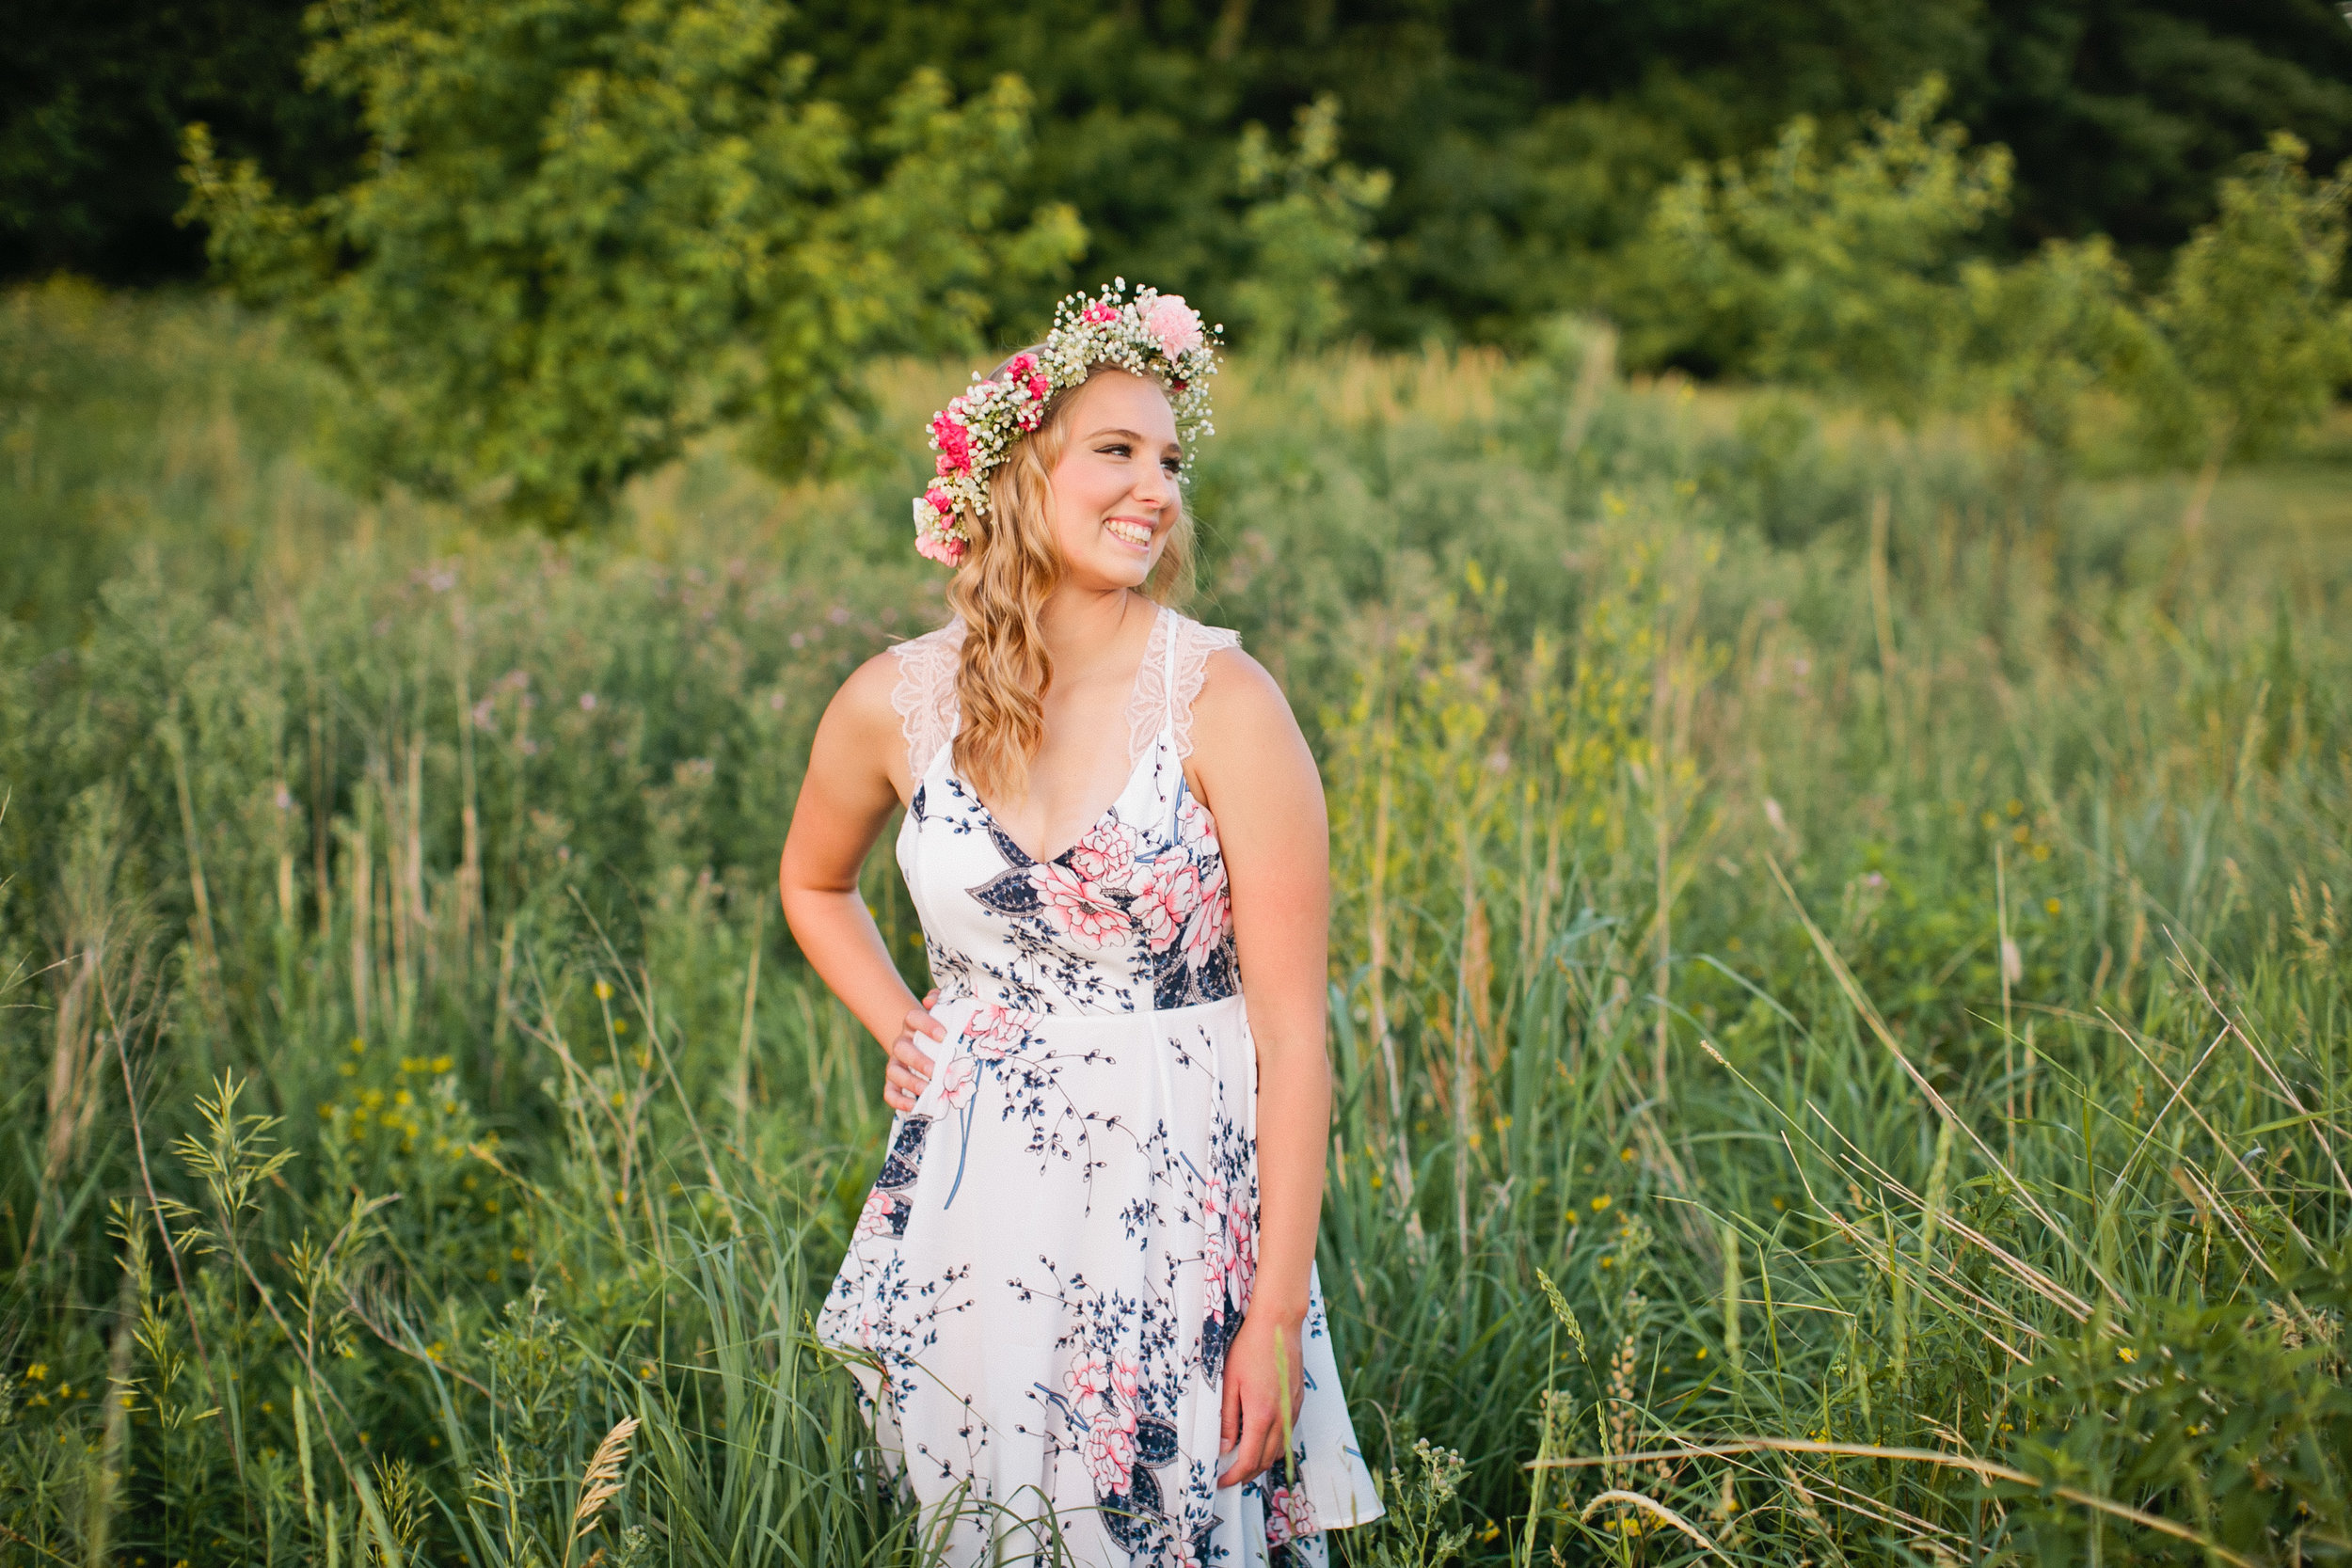 girl smiling in flower crown and dress for senior photos